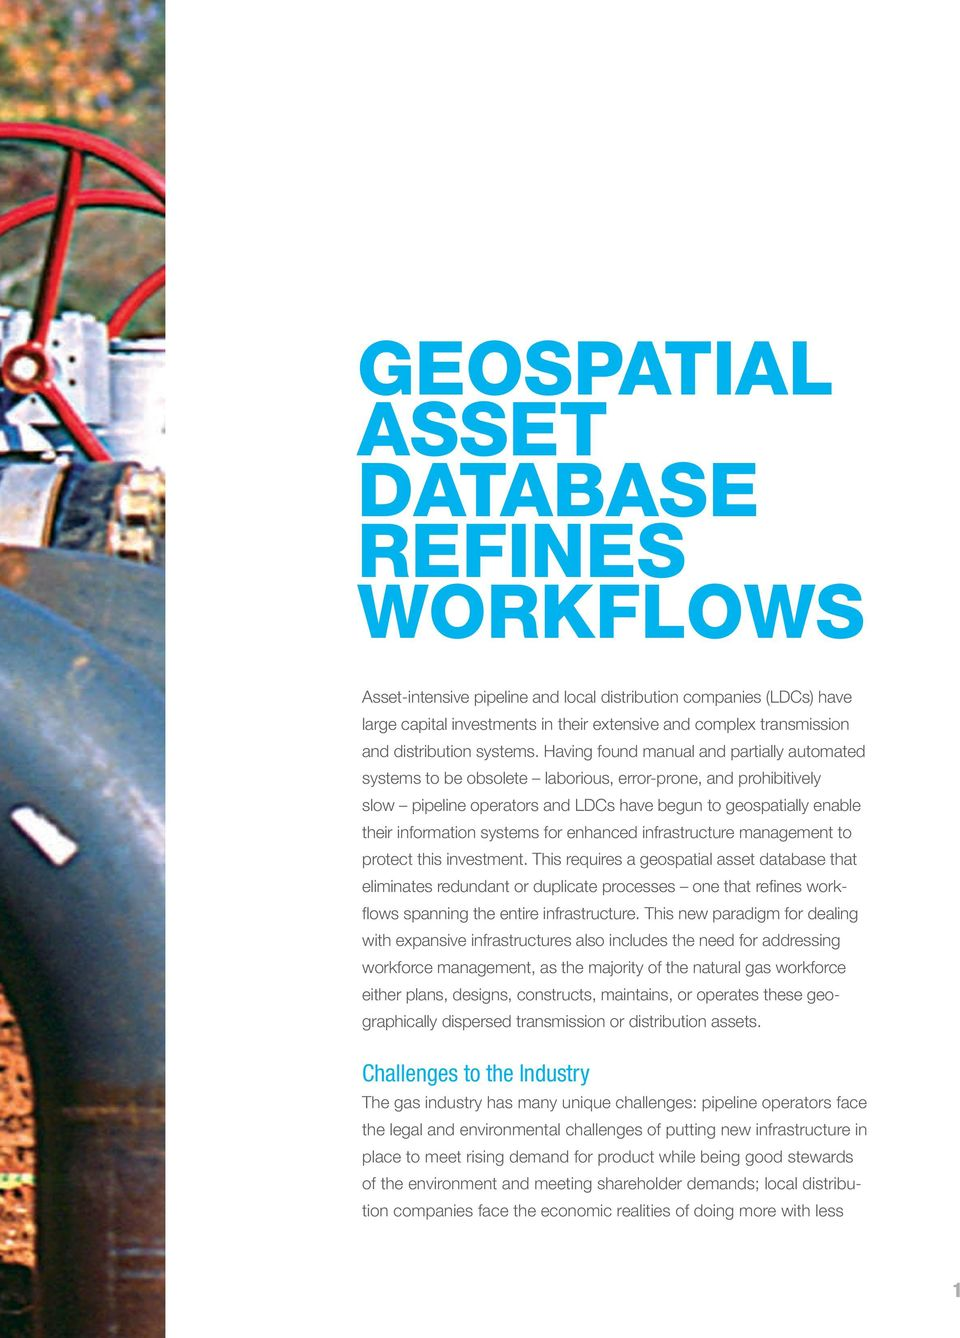 Having found manual and partially automated systems to be obsolete laborious, error-prone, and prohibitively slow pipeline operators and LDCs have begun to geospatially enable their information